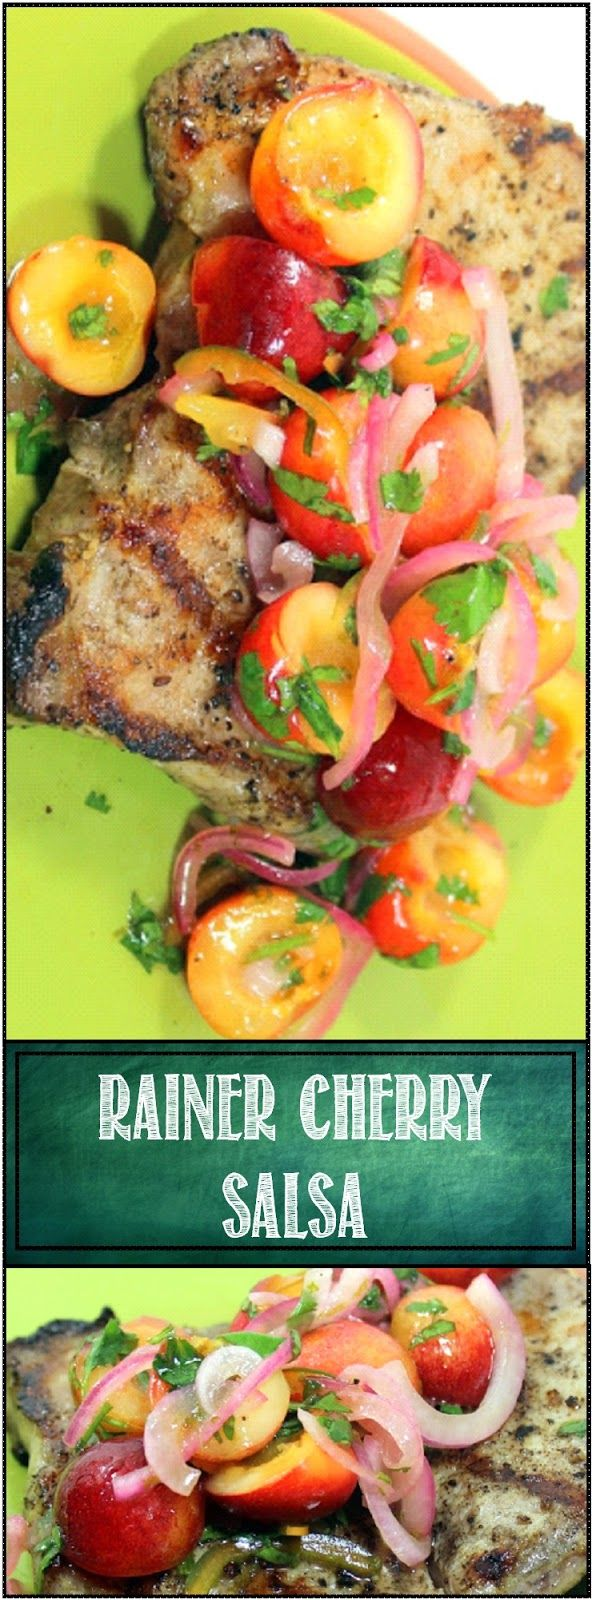 Rainier Cherry Salsa for a Pork Chop - Grilling Time Condiment...Maybe because these cherries are only in season a couple of months a year, this is by far one of my very favorite bites... The sweet powerful variety of Cherries accents a beautifully grilled pork chop for that one perfect bite! Easy to make and best when made in advance for the flavors to mix and mingle, I simply love this BEAUTIFUL Look and Taste!